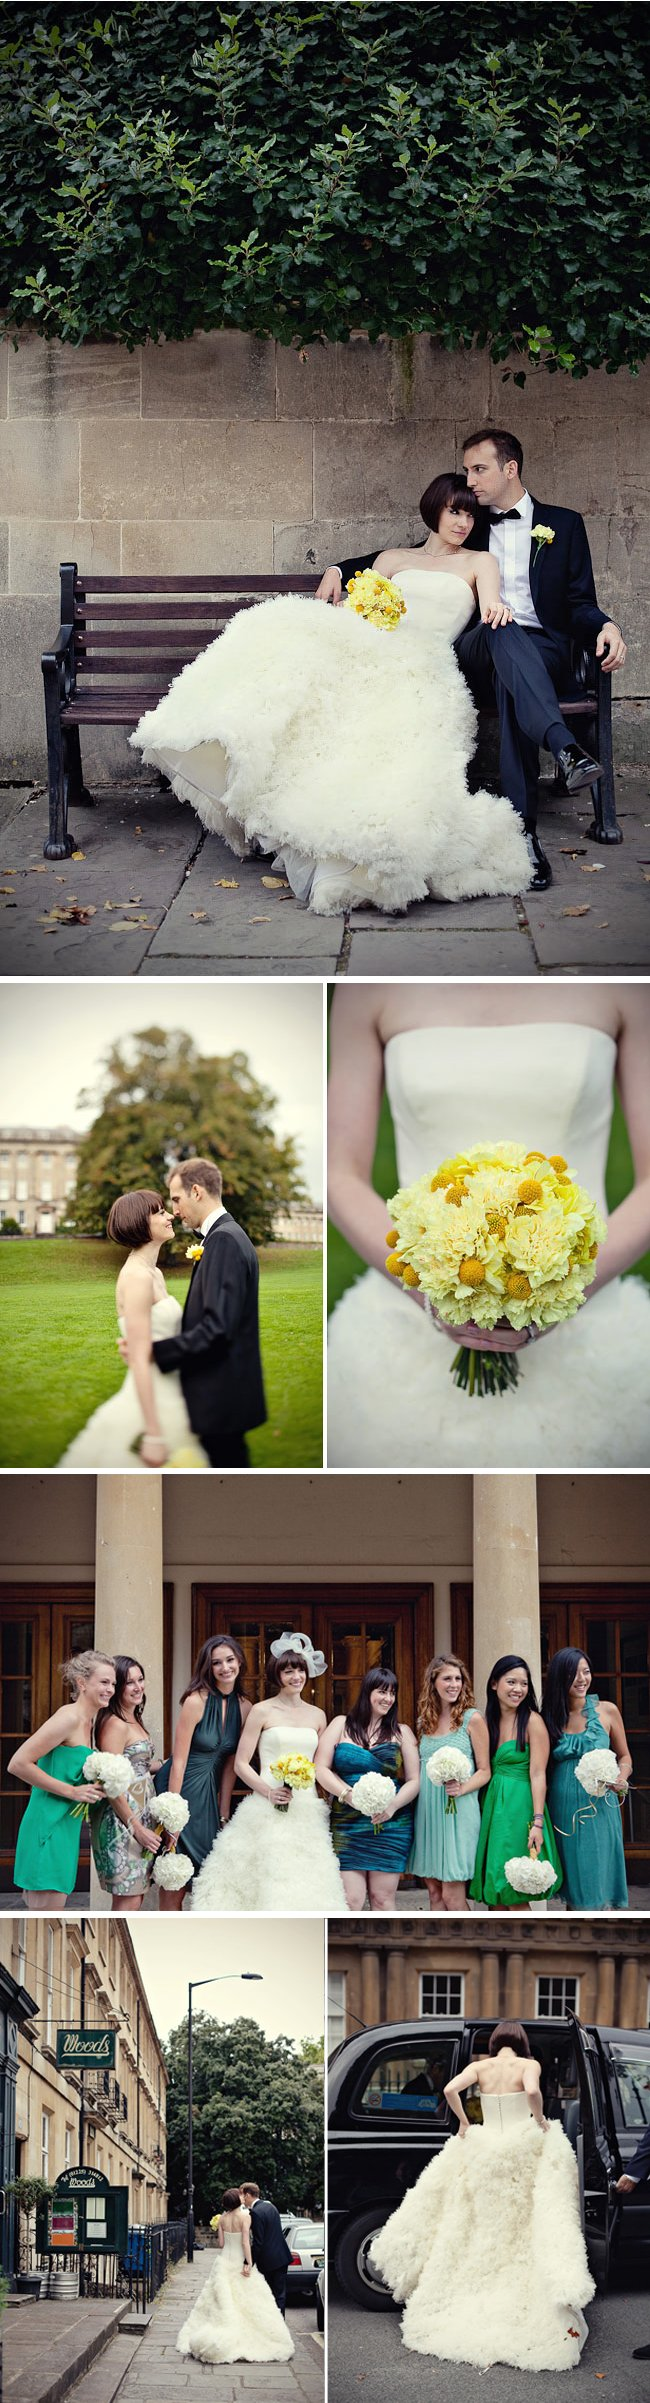 elegant real weddings yellow bridal bouquet dramatic ballgown wedding dress